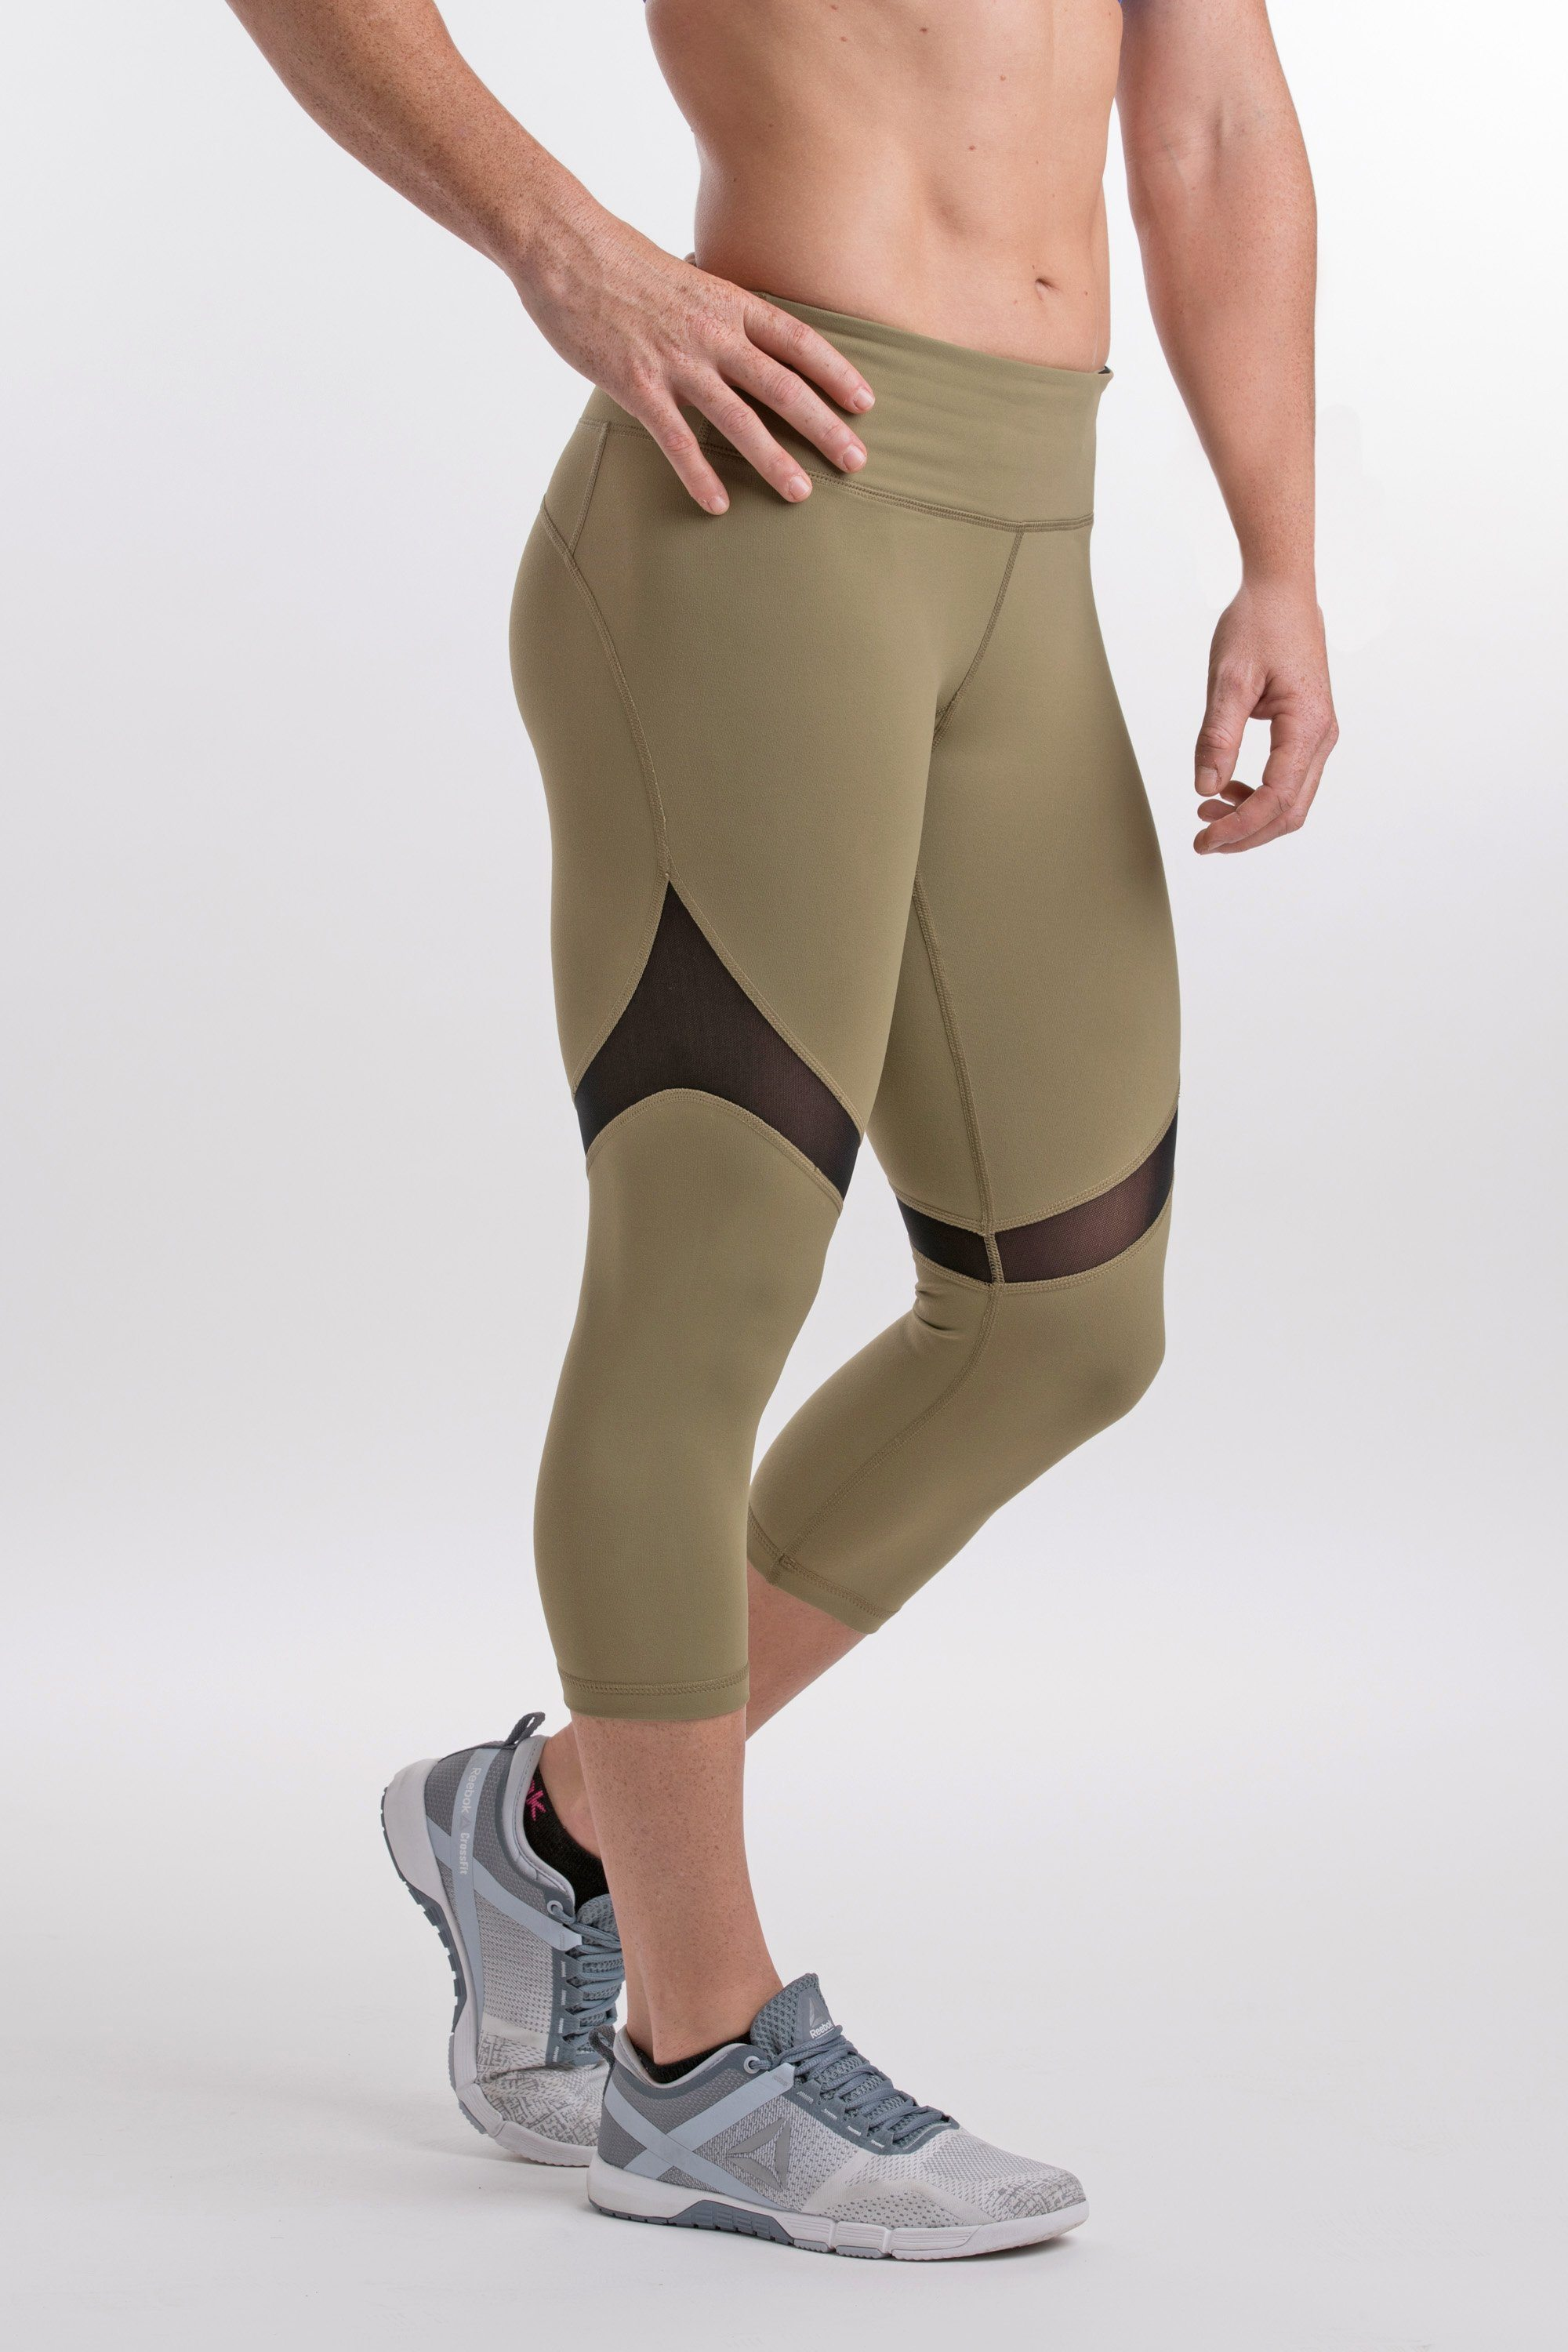 ae5c218893b7e Superdry Gym Sport Runner Leggings | Fitness | Gym leggings, Leggings  fashion, Athletic outfits